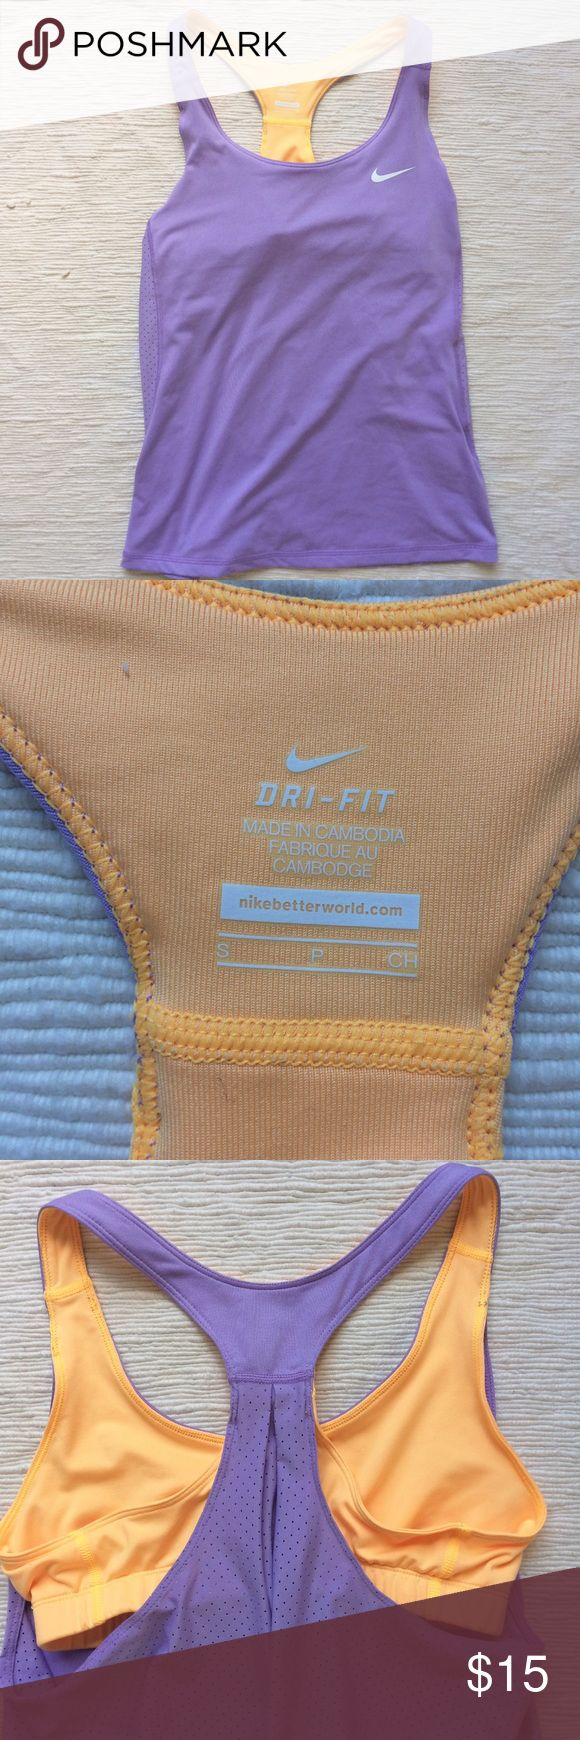 Nike dry fit workout tank Lavender Nike loose tank attached to orange sports bra. Tank is nice and flowy for a bit of a peek a boo look in the back. Made of Dry Fit fabric. Nike Tops Tank Tops